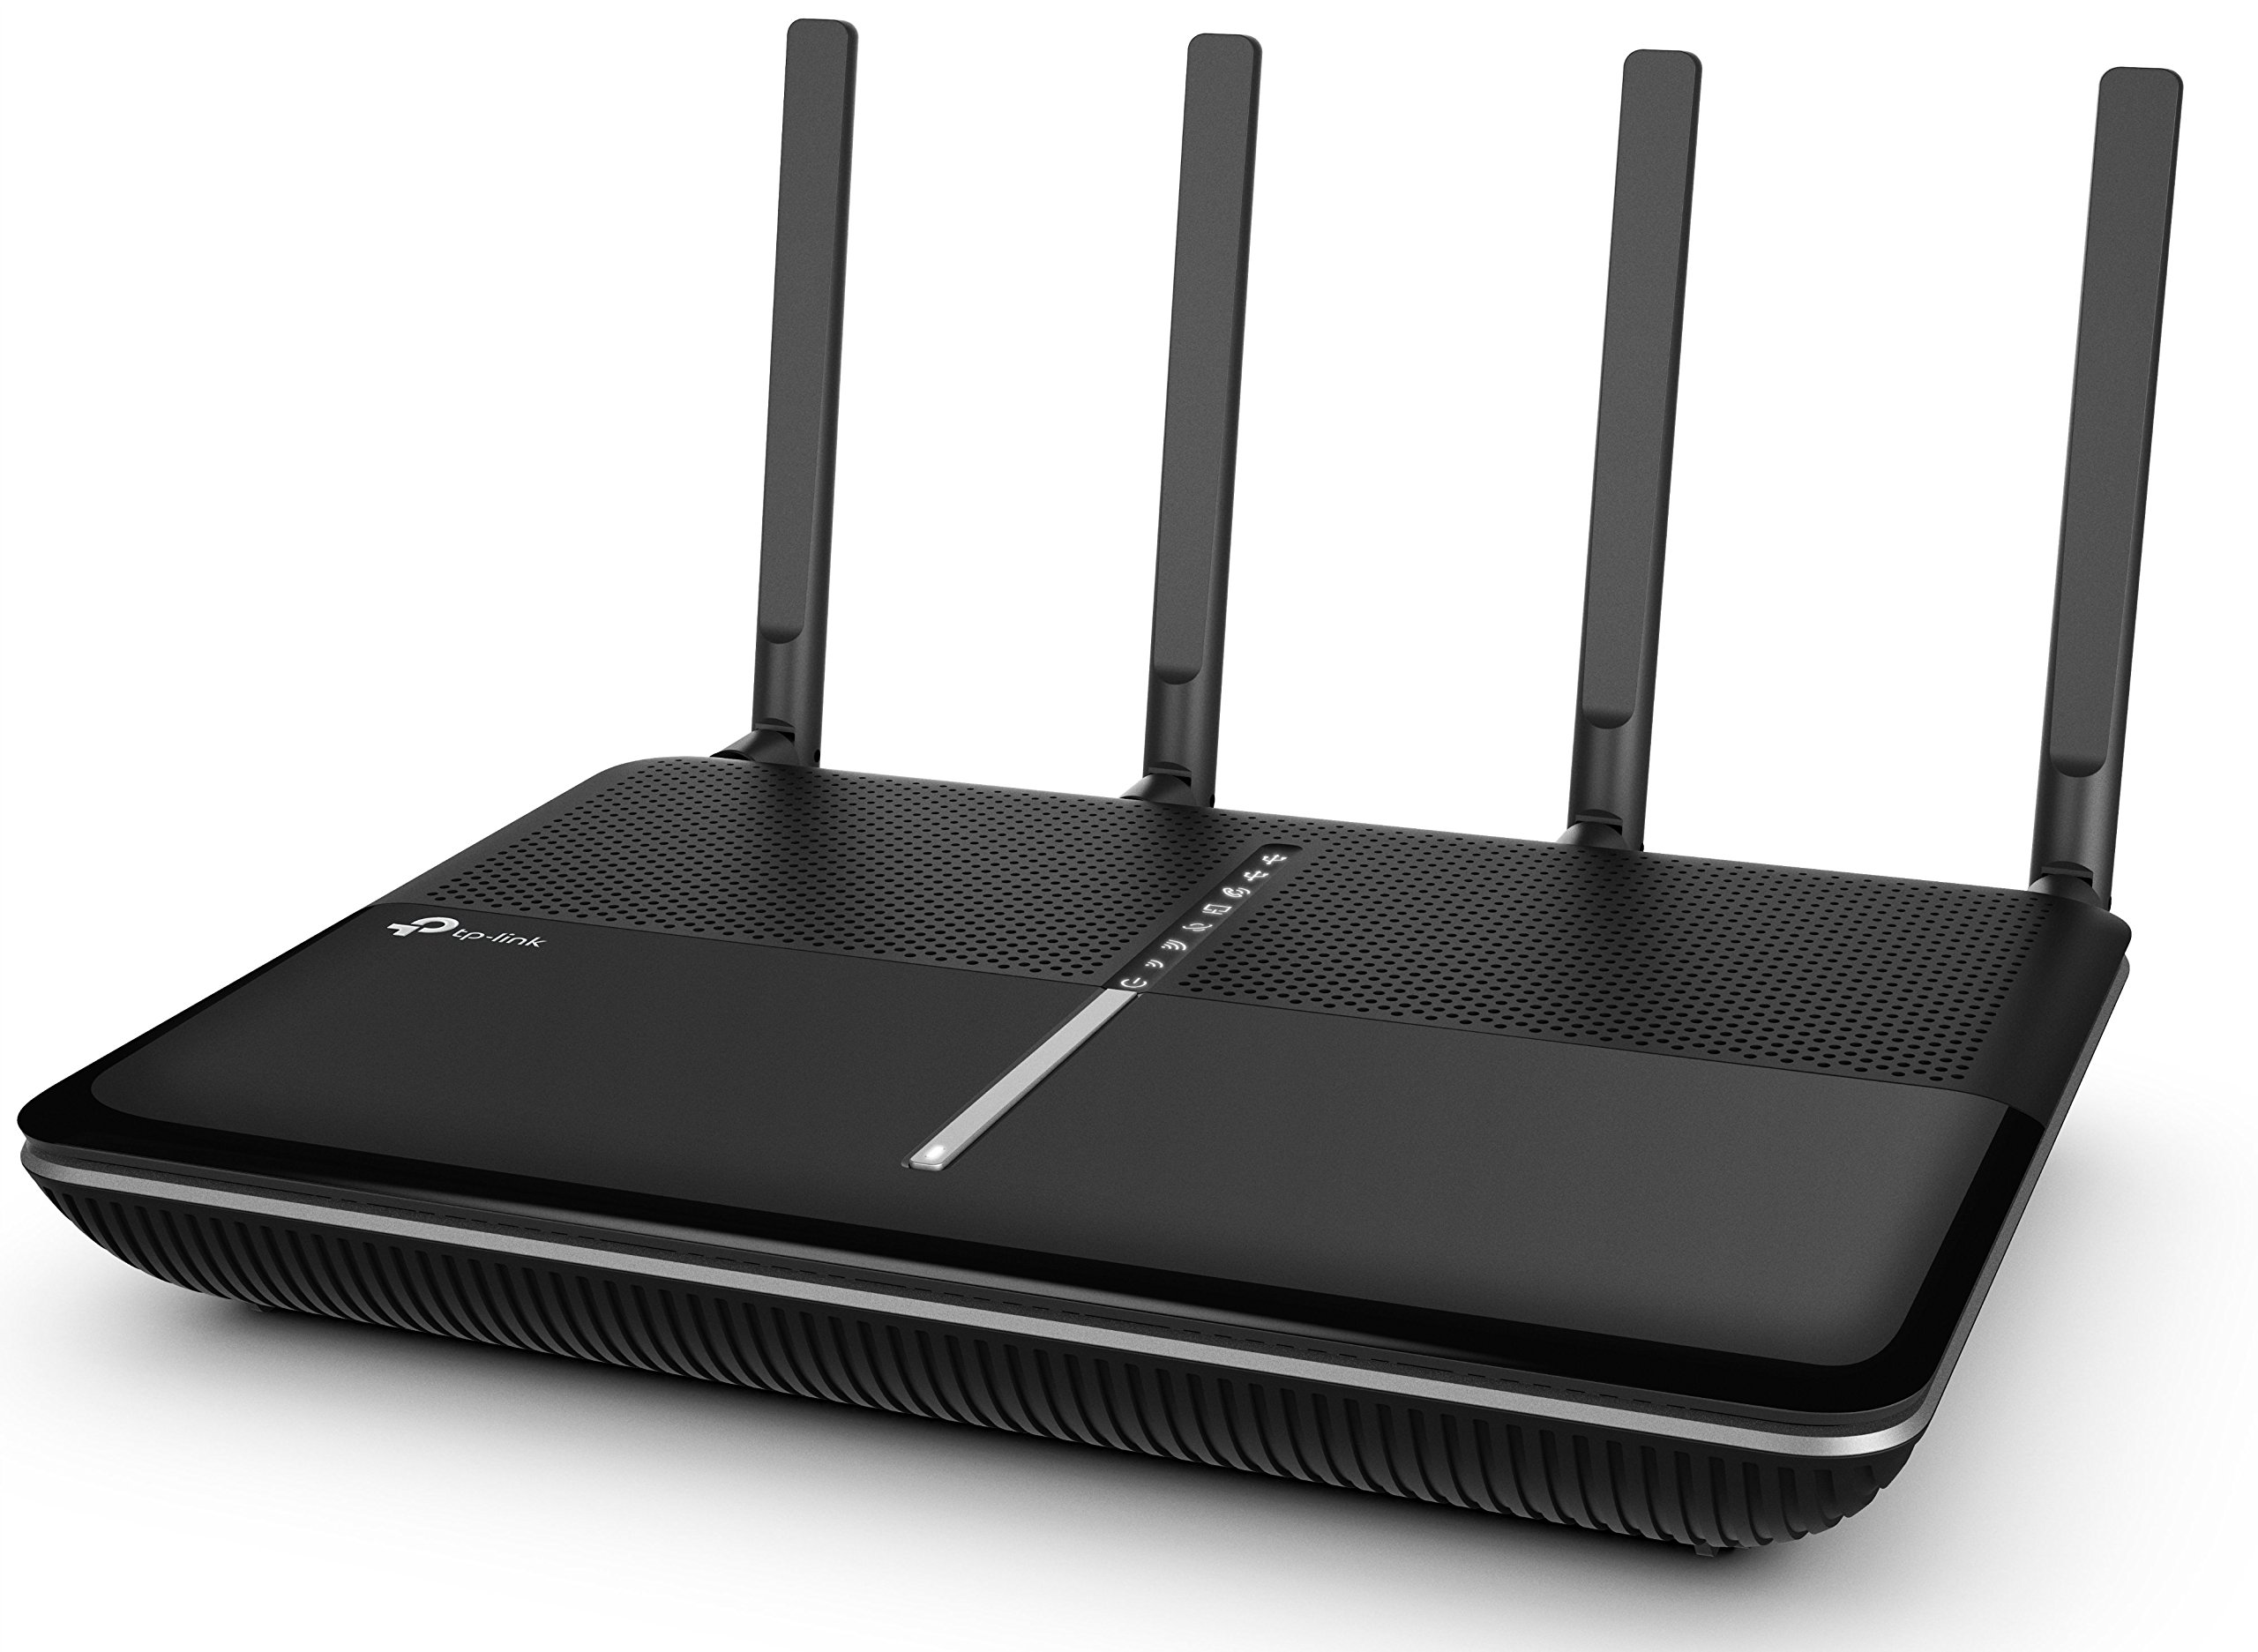 TP-Link AC3150 Wireless Wi-Fi MU-MIMO Router – 4K Streaming and Gaming, Comprehensive Antivirus and Security, Works with Alexa and IFTTT (Archer C3150 V2)